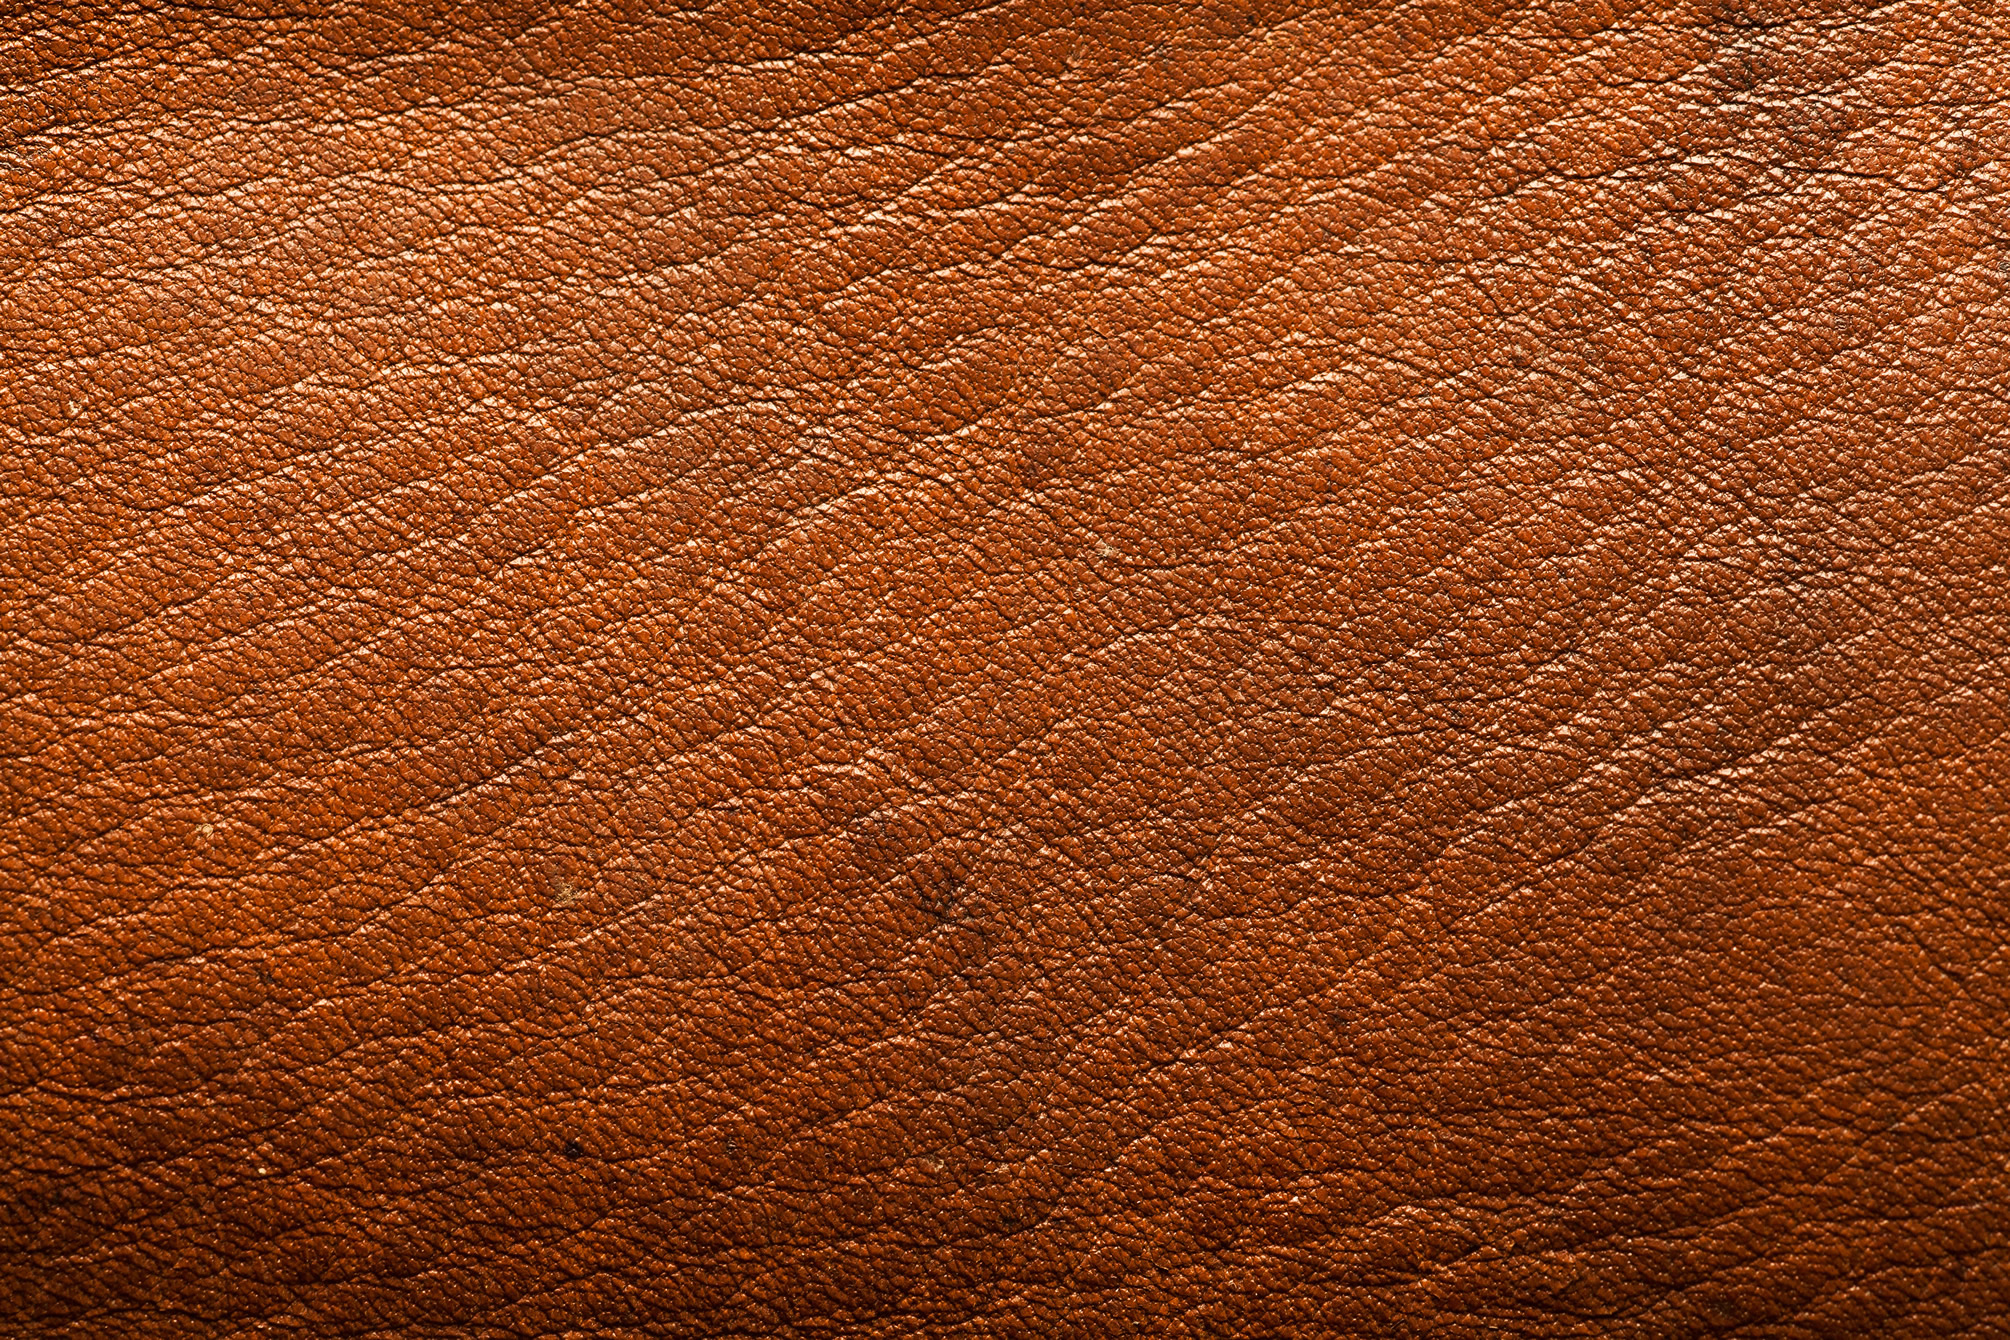 Brown Leather Texture Background Background